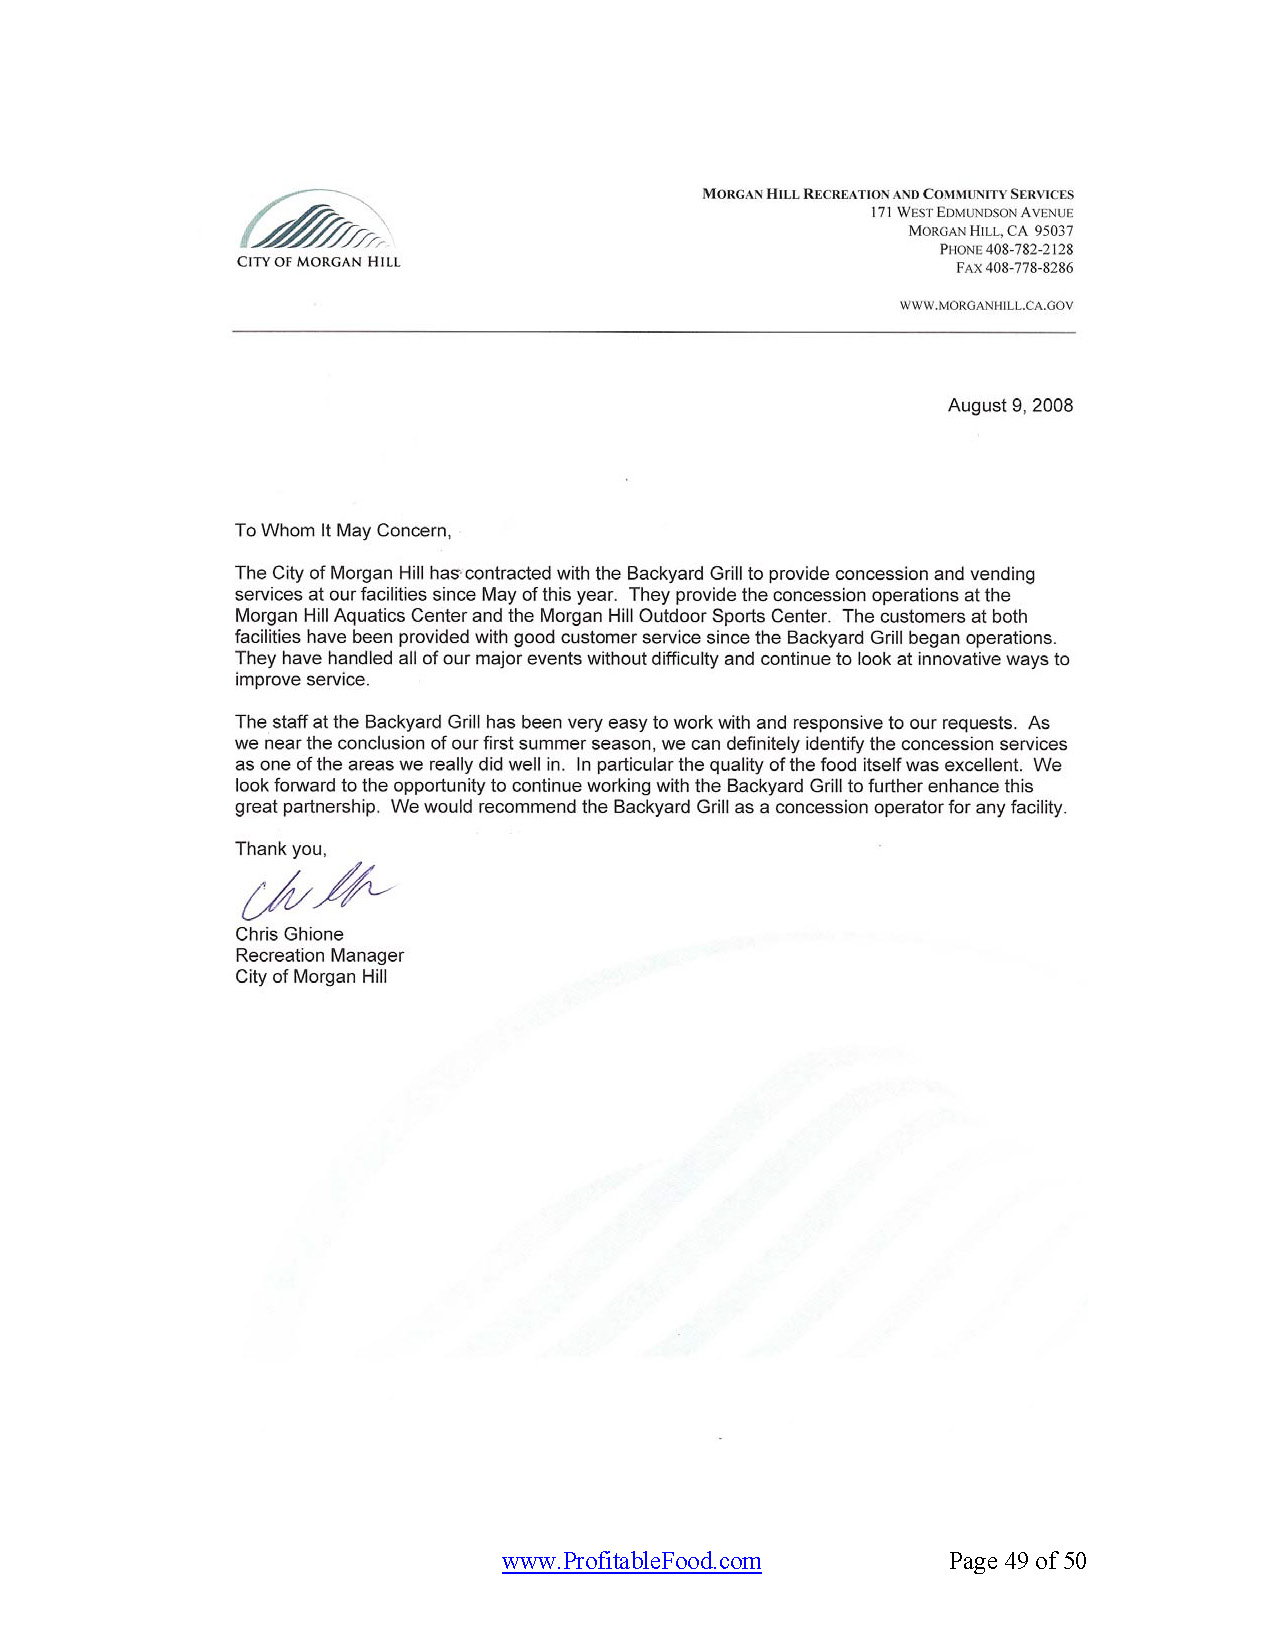 Profitable Food Facilities Recommendation Letter